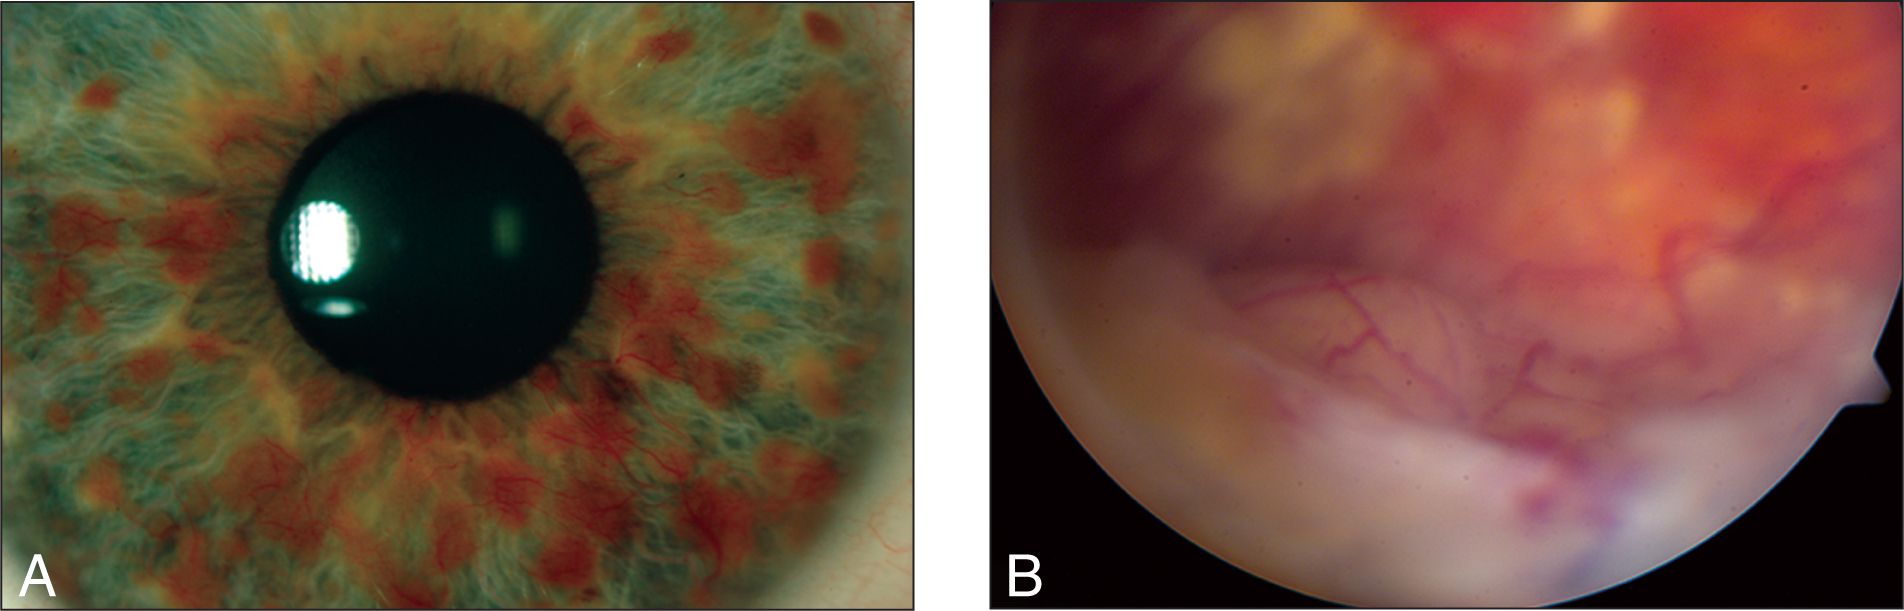 (A) Slit-Lamp Photograph of the Right Eye at Presentation Showing Multiple Lisch Nodules and Florid Neovascularization of the Iris. (B) On Gonioscopic Examination, 360° Neovascularization of the Angle Is Seen. In the Inferior Fundus, There Is an Elevated Pink Vascular Mass with Surrounding Lipid Exudate, Consistent with Vasoproliferative Tumor.